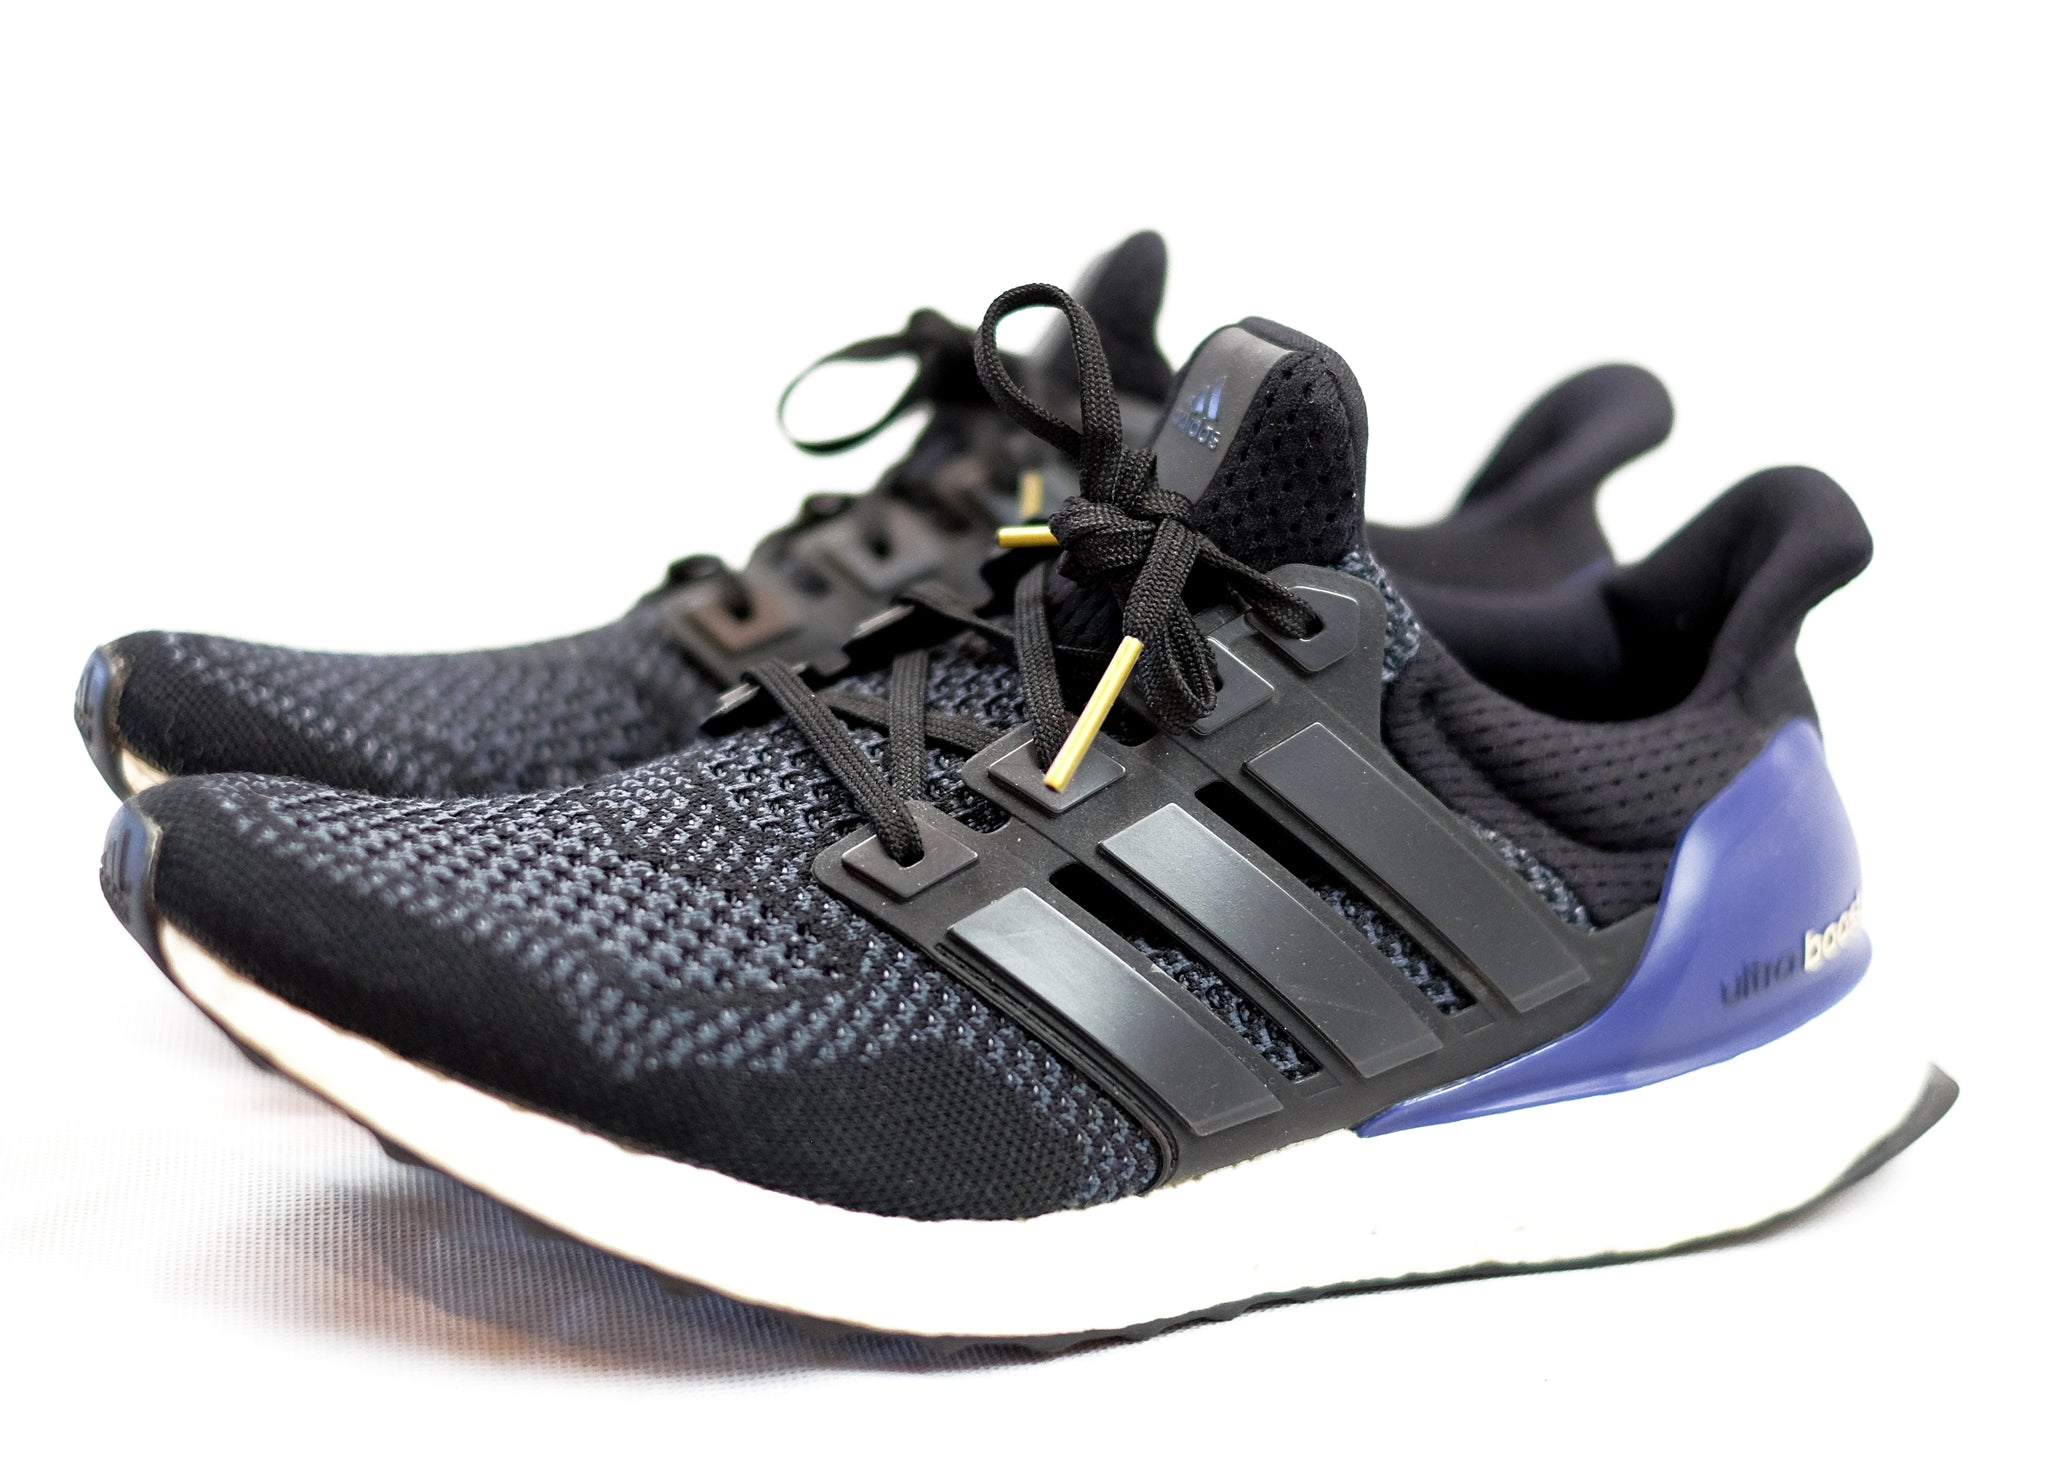 reputable site 365fa 9aa7c Adidas Ultra Boost OG. Product image 1 ...